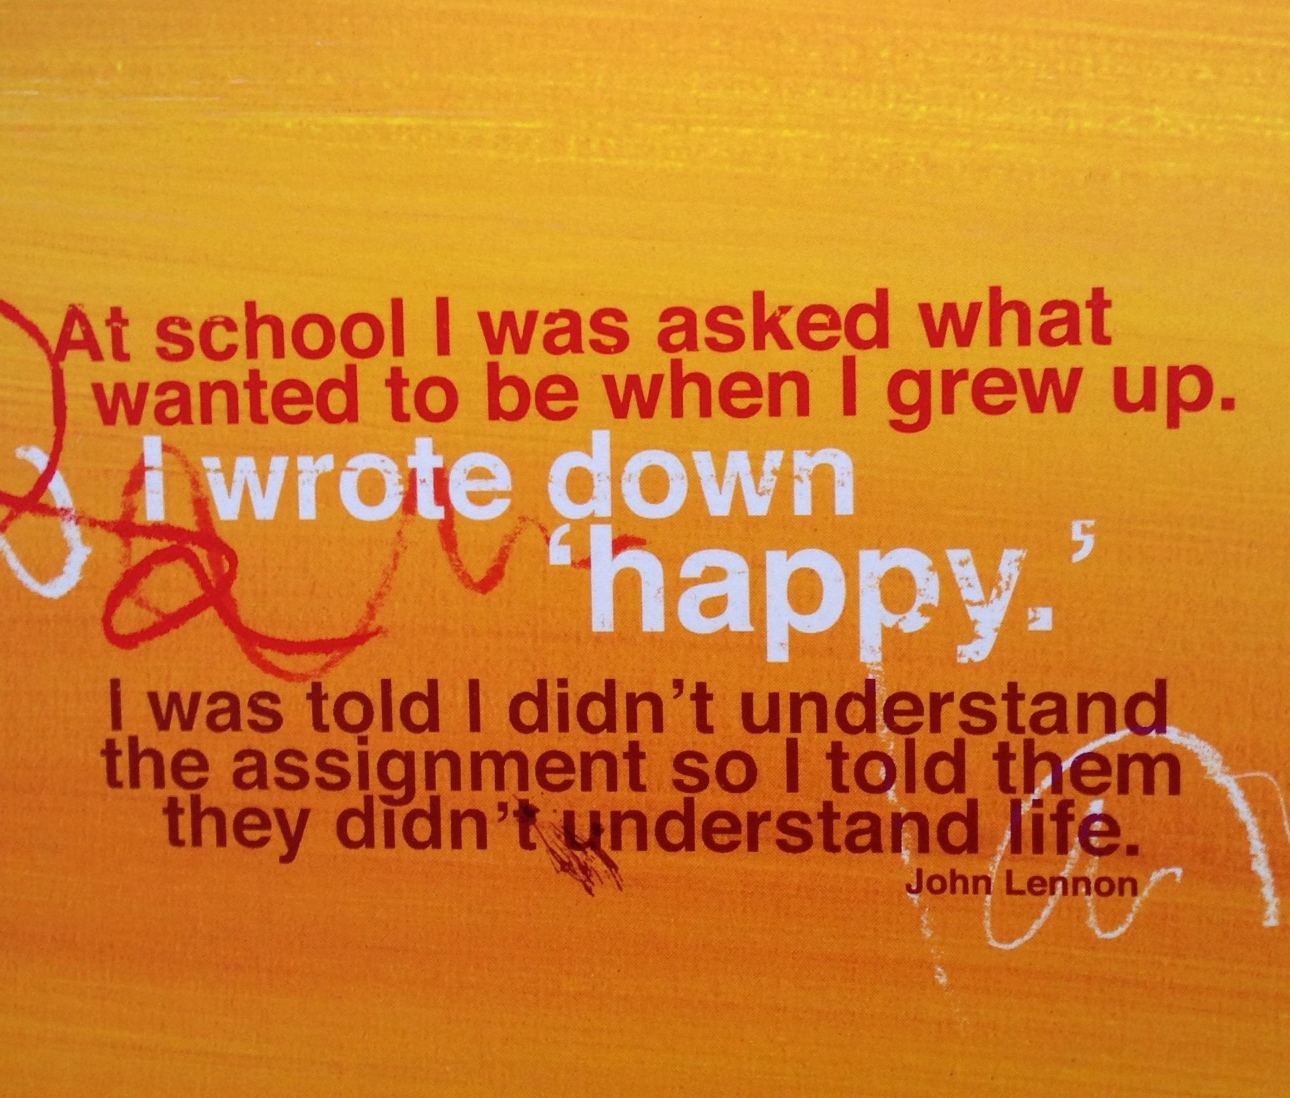 Quotes About Happiness John Lennon. QuotesGram